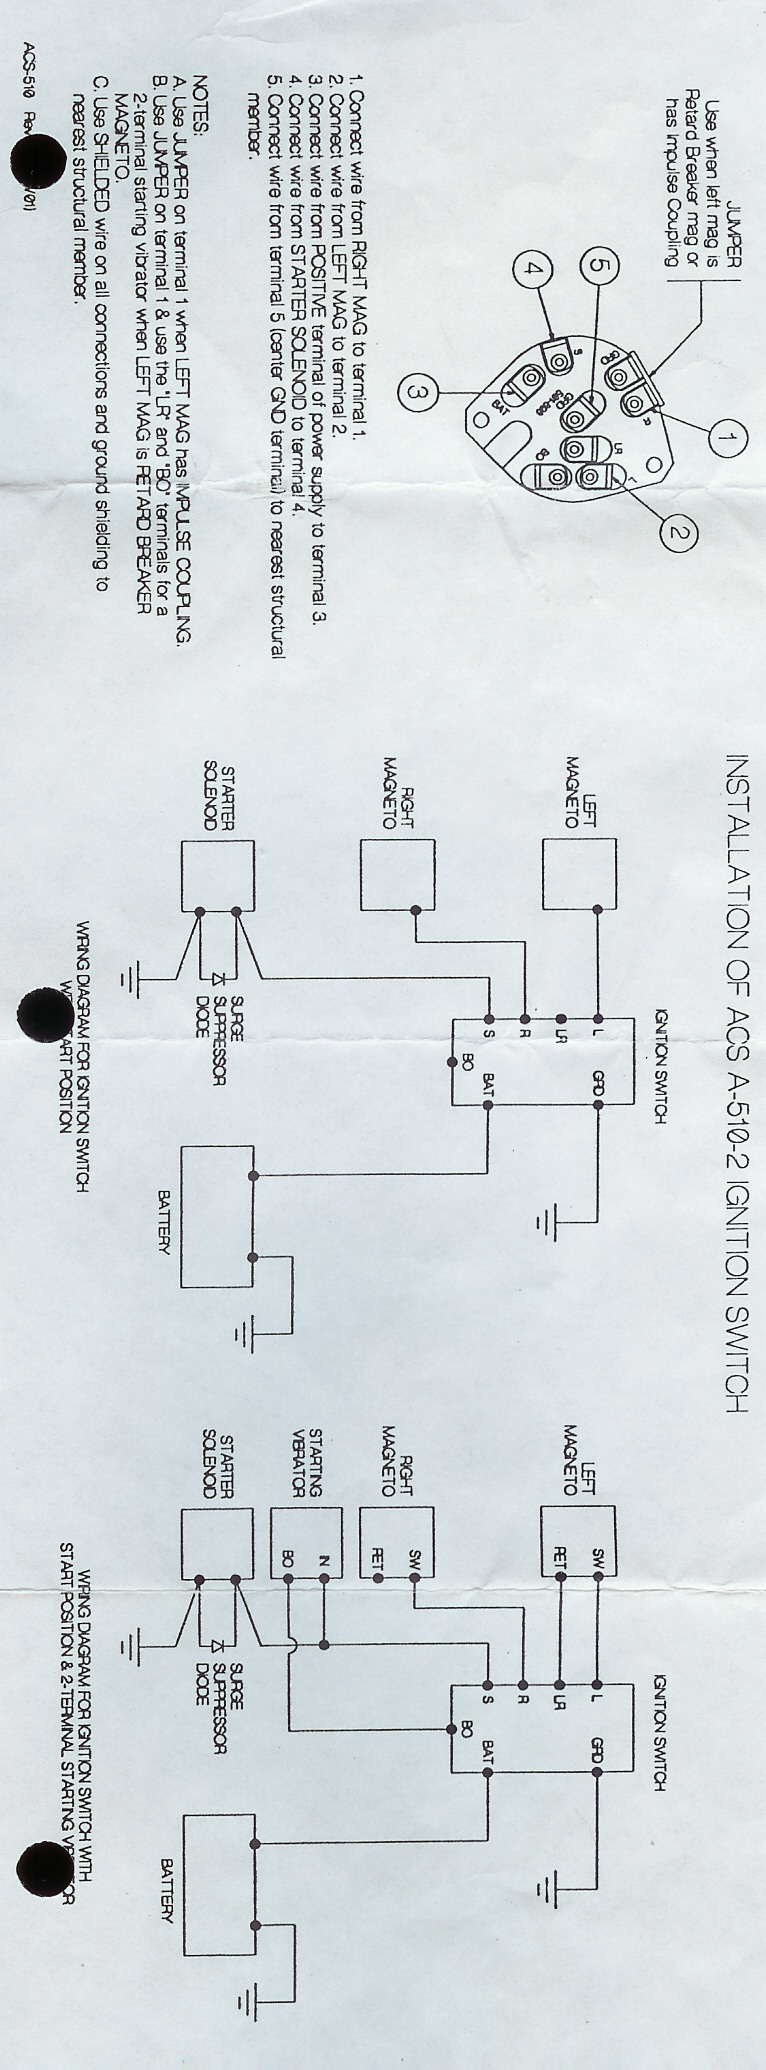 matronics email lists view topic wiring diagram for slick start with 2 slick mags